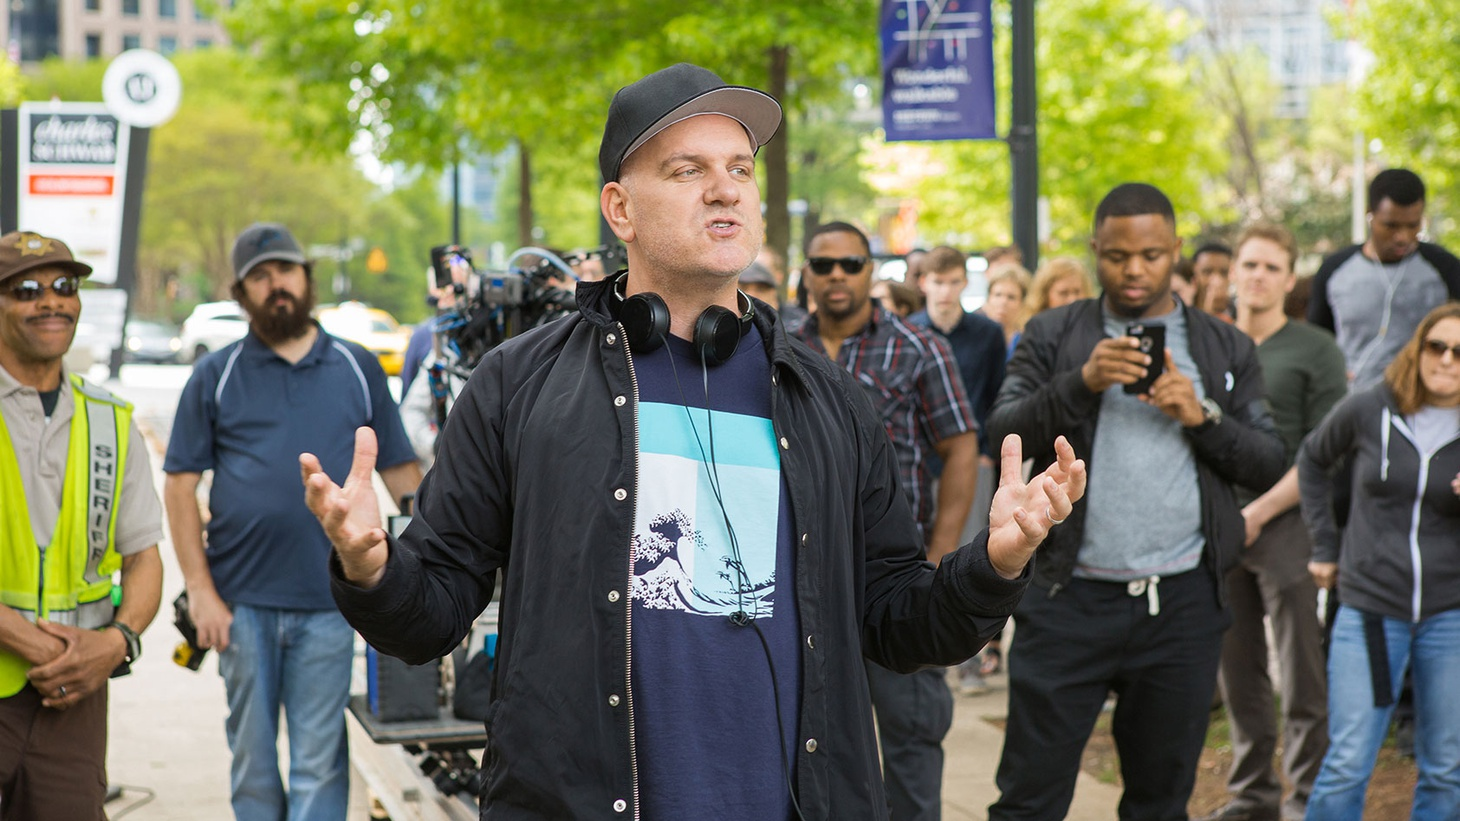 Actor Mike O'Malley explores with idea of giving back to those that help you become successful in the series Survivor's Remorse.